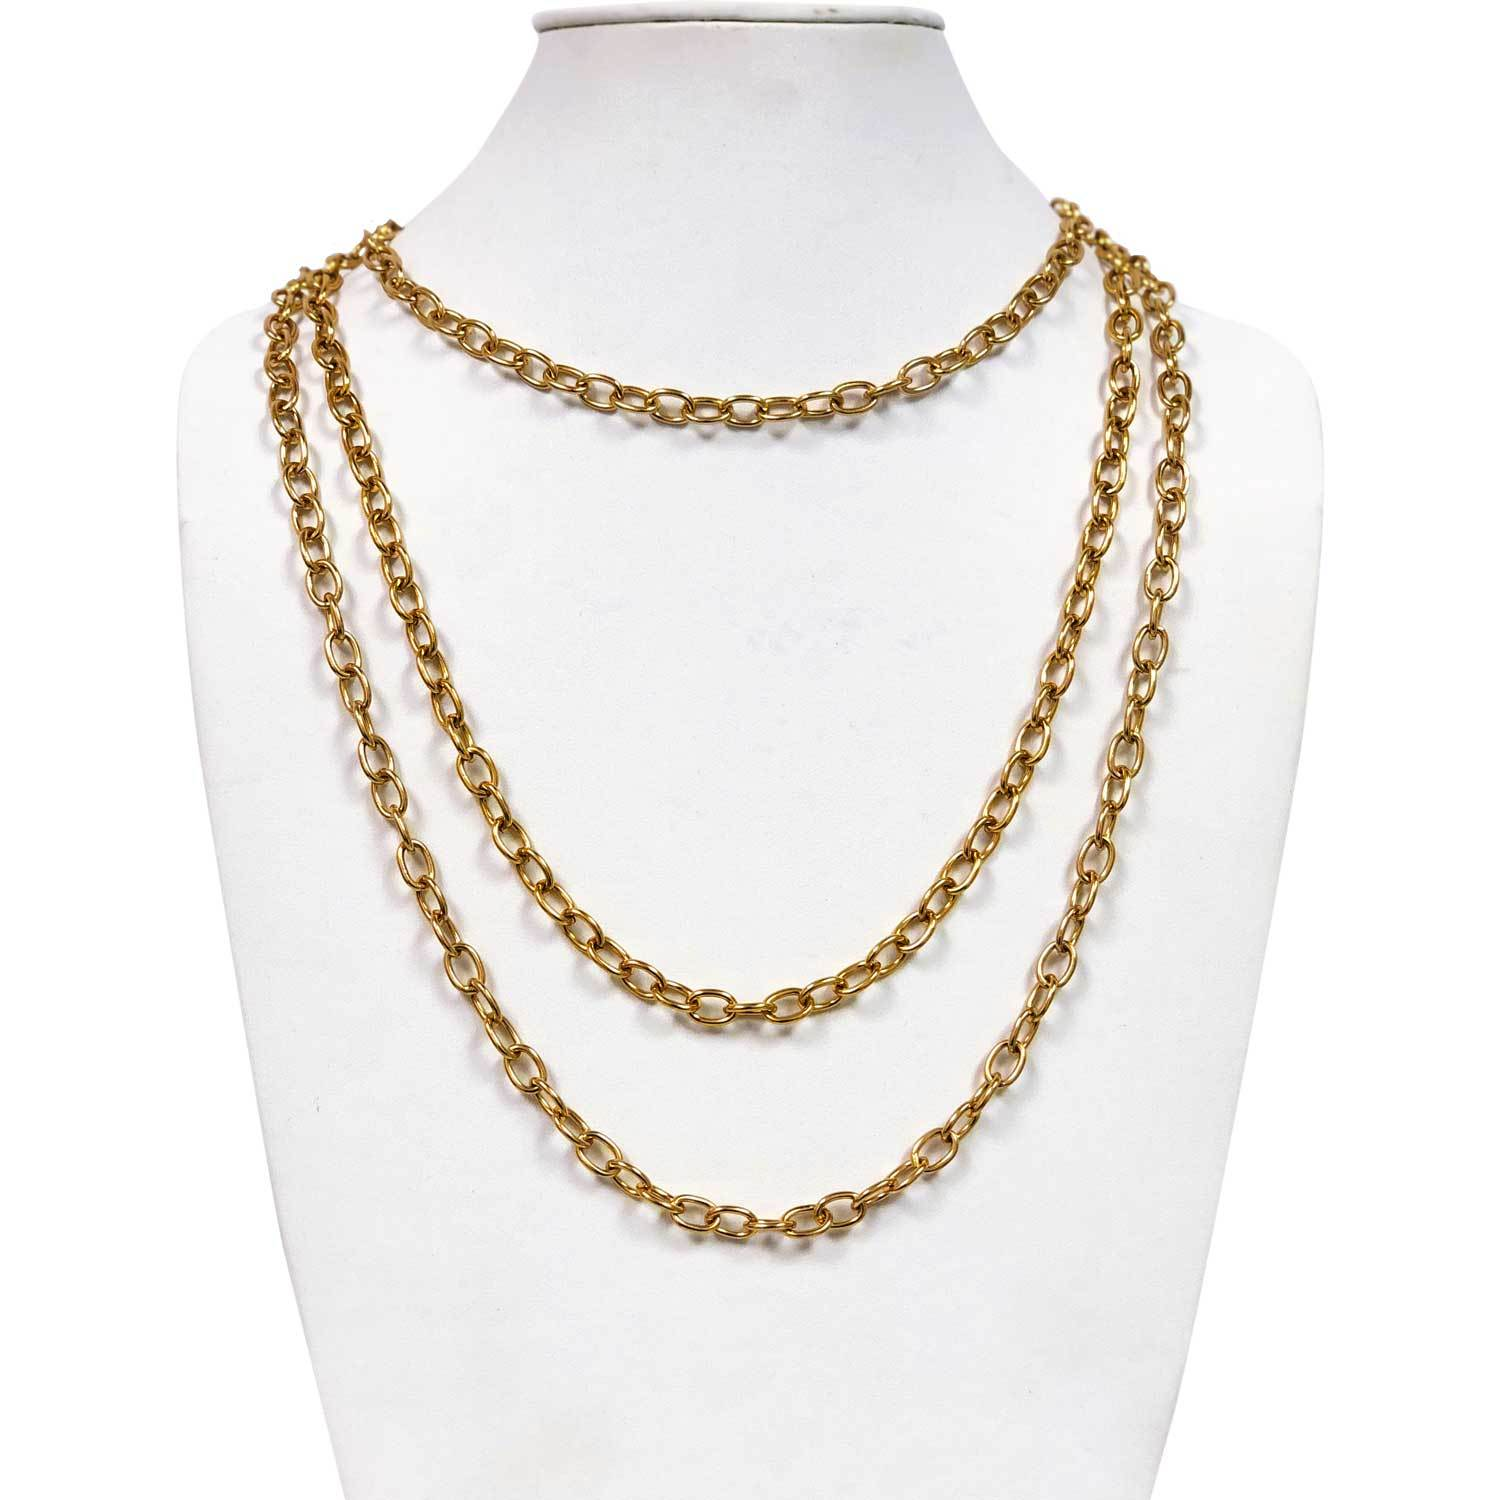 Alchemia Handcrafted Chain | Charles Albert Jewelry